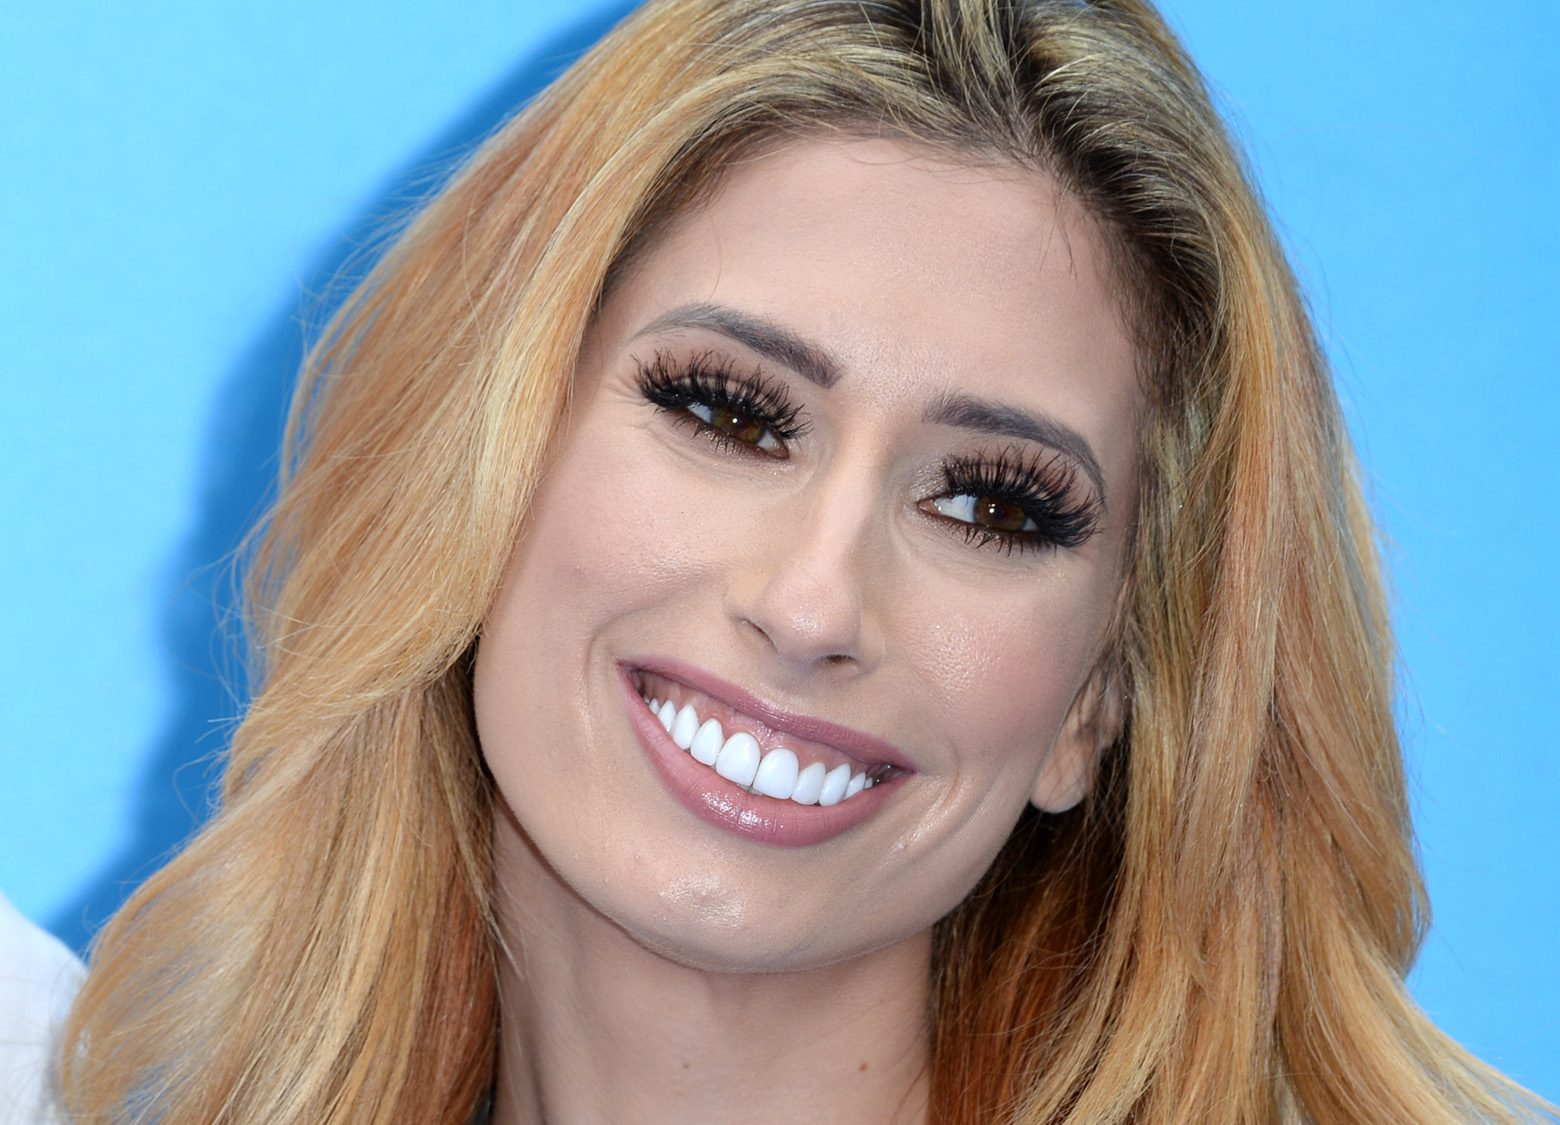 Private Stacey Solomon snaps 'leaked online' as she is added to the celebrity hack scandal list